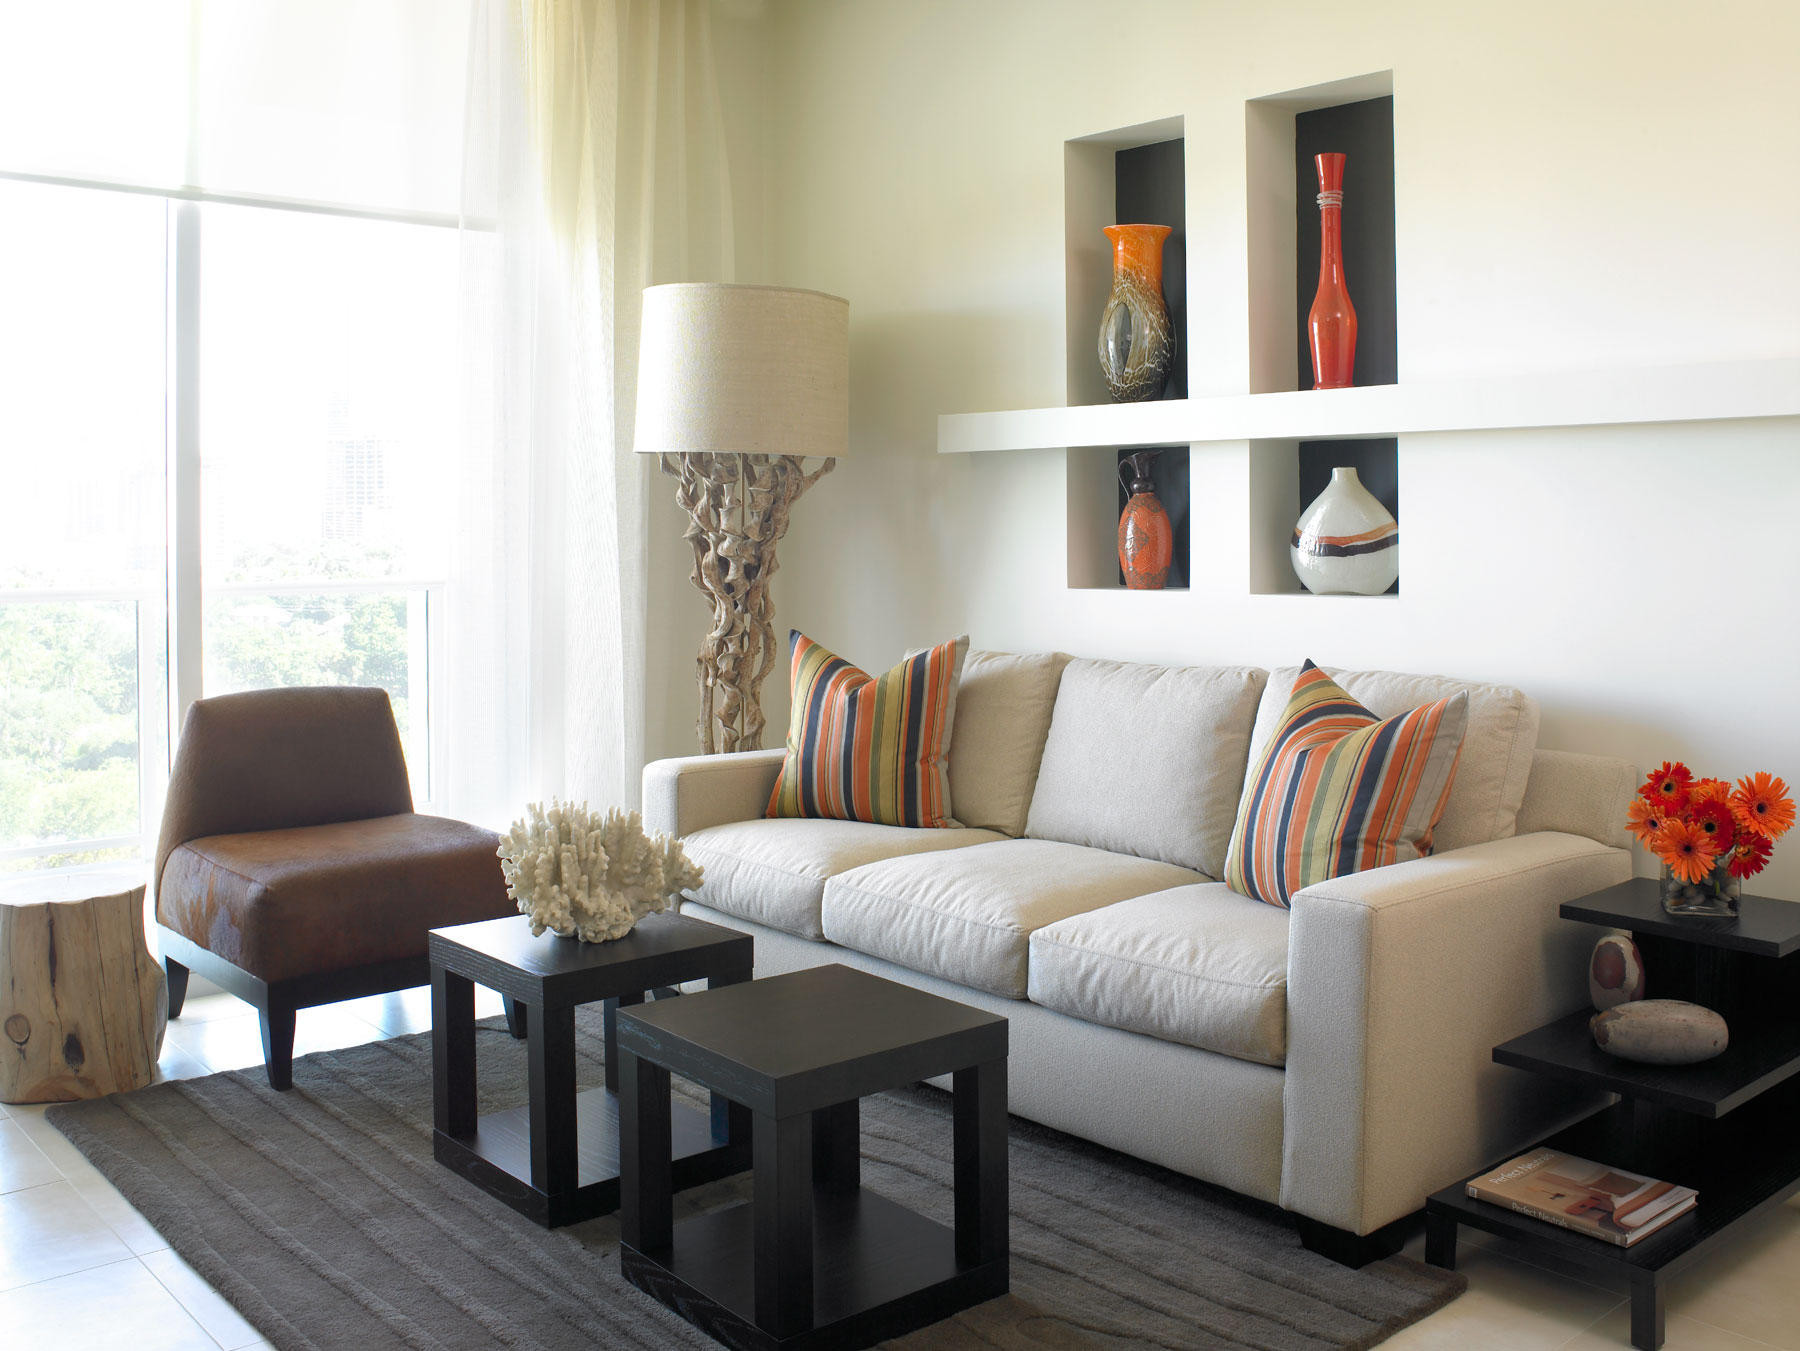 Best ideas about Furniture Ideas For Living Room . Save or Pin Small Living Room Furniture Ideas Homeideasblog Now.